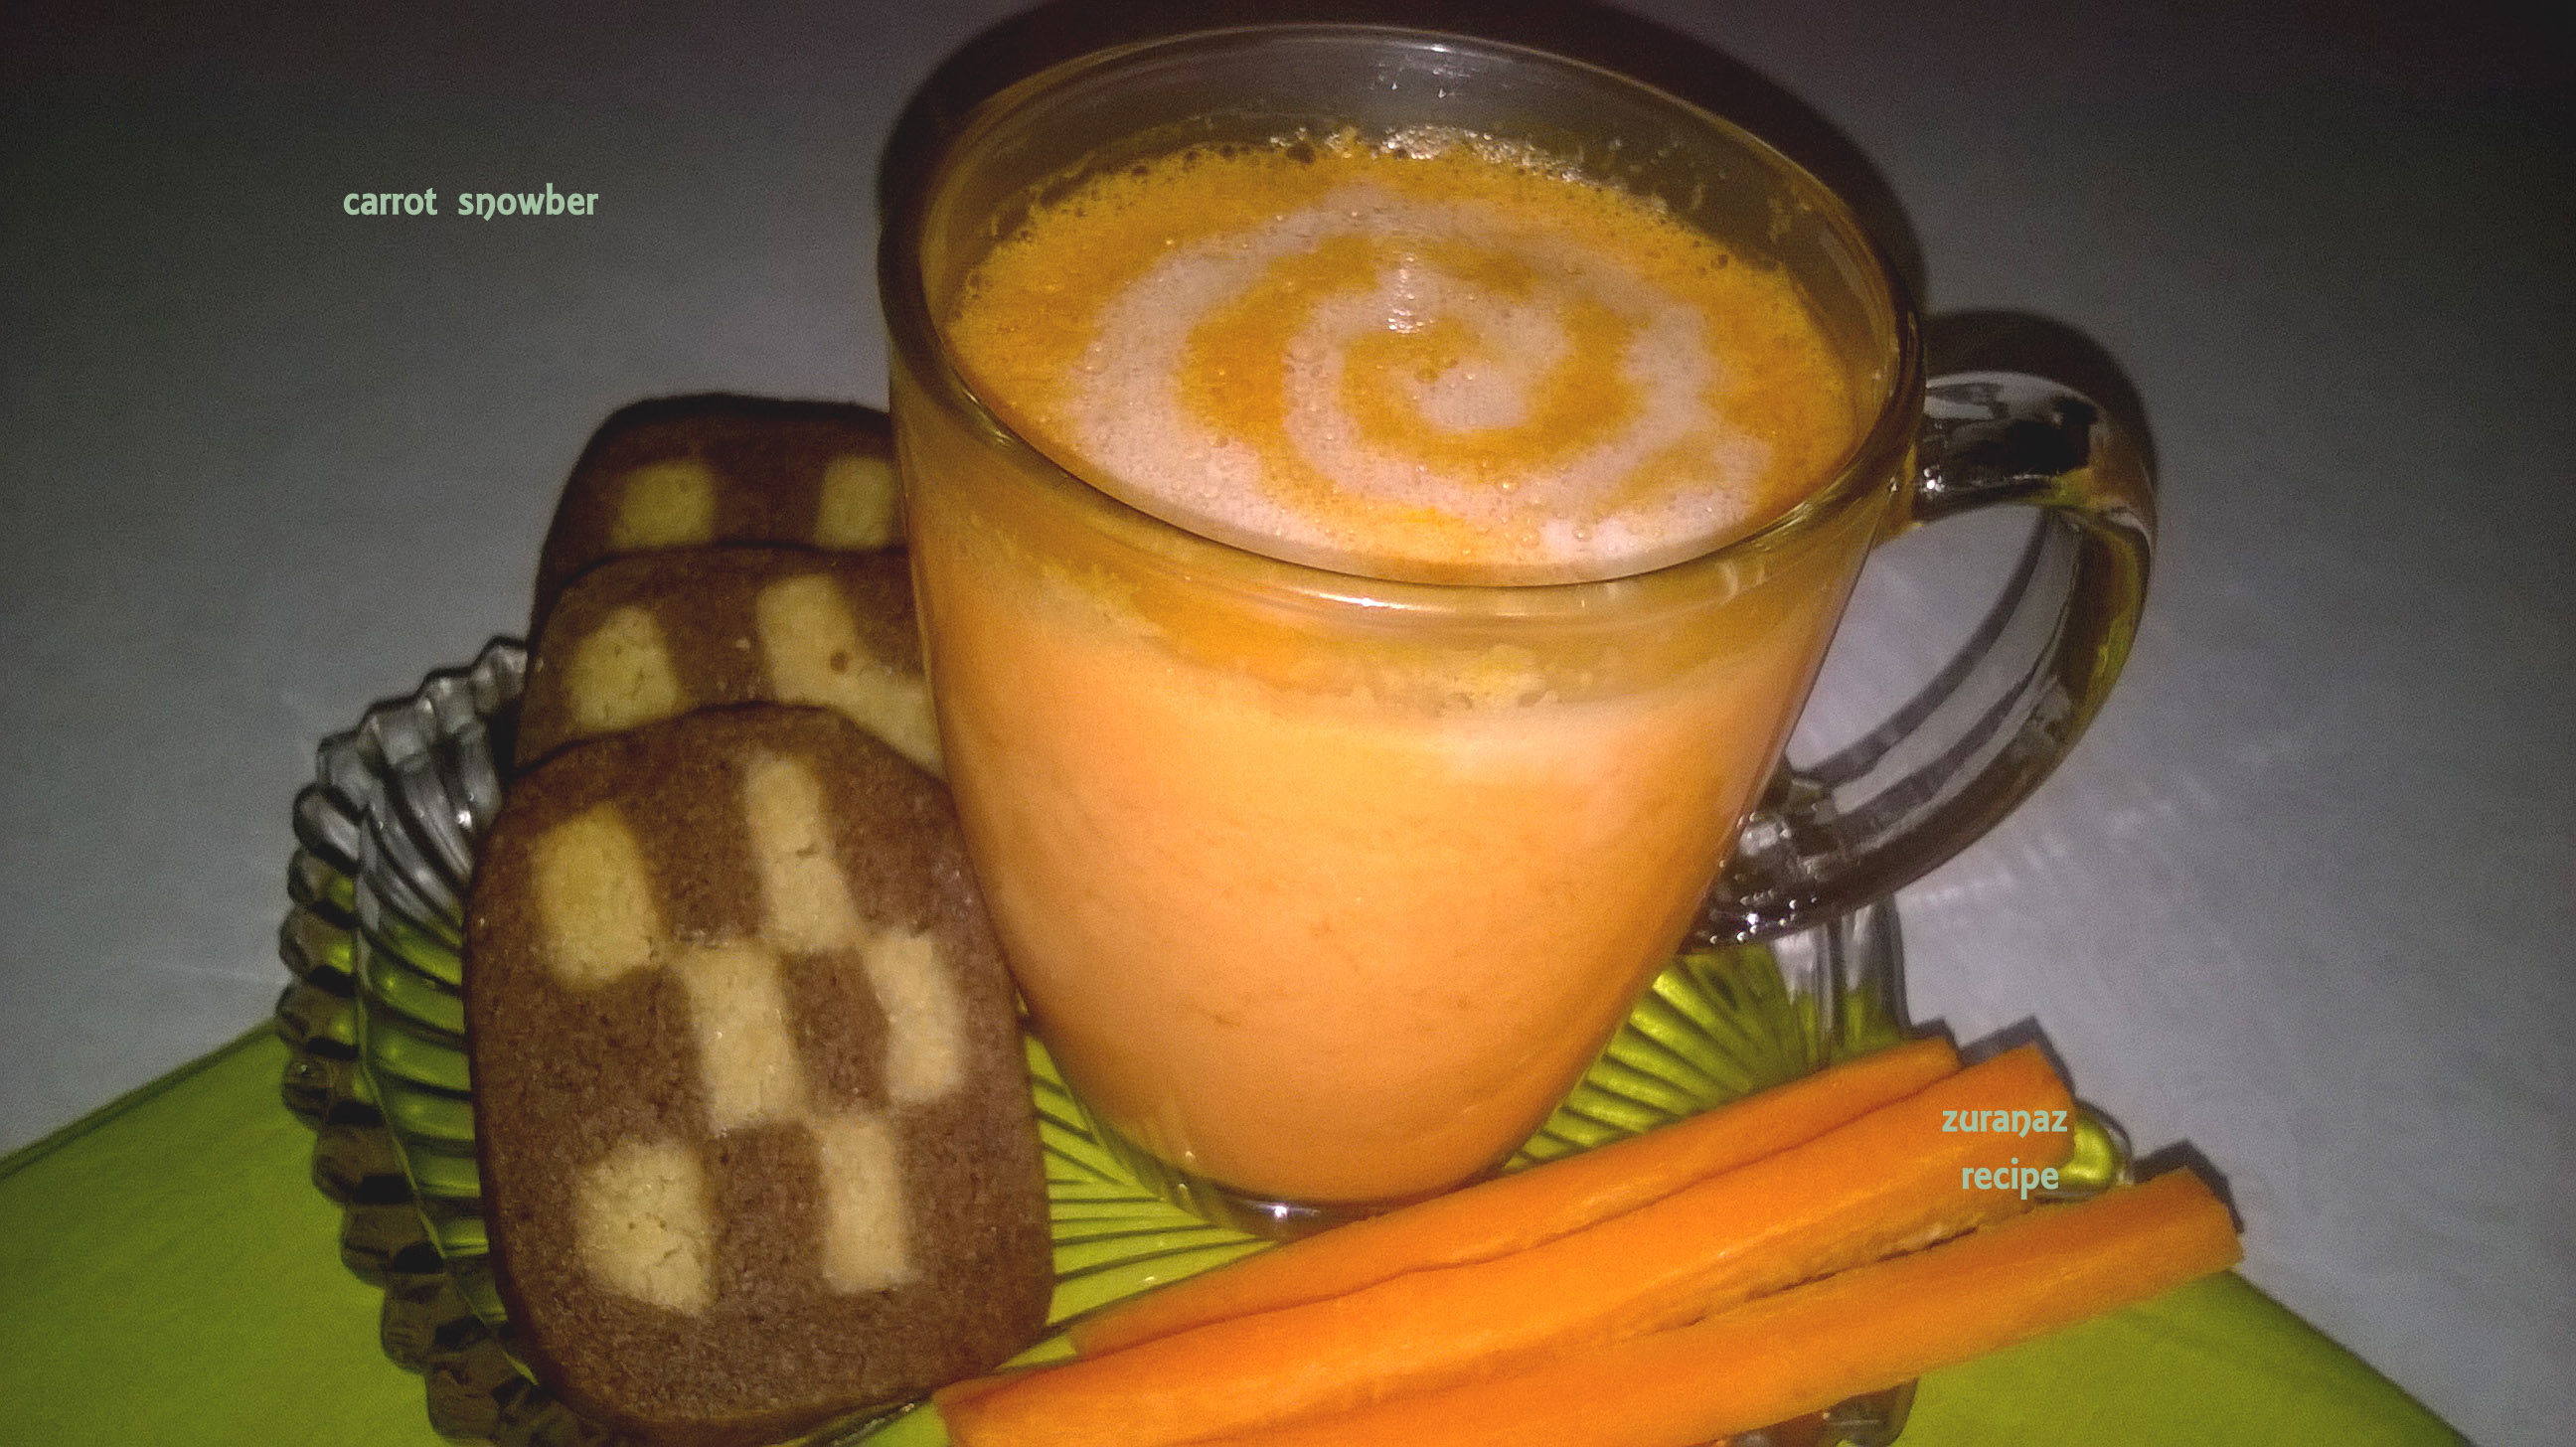 carrot smoothy|| gajorer shorbot